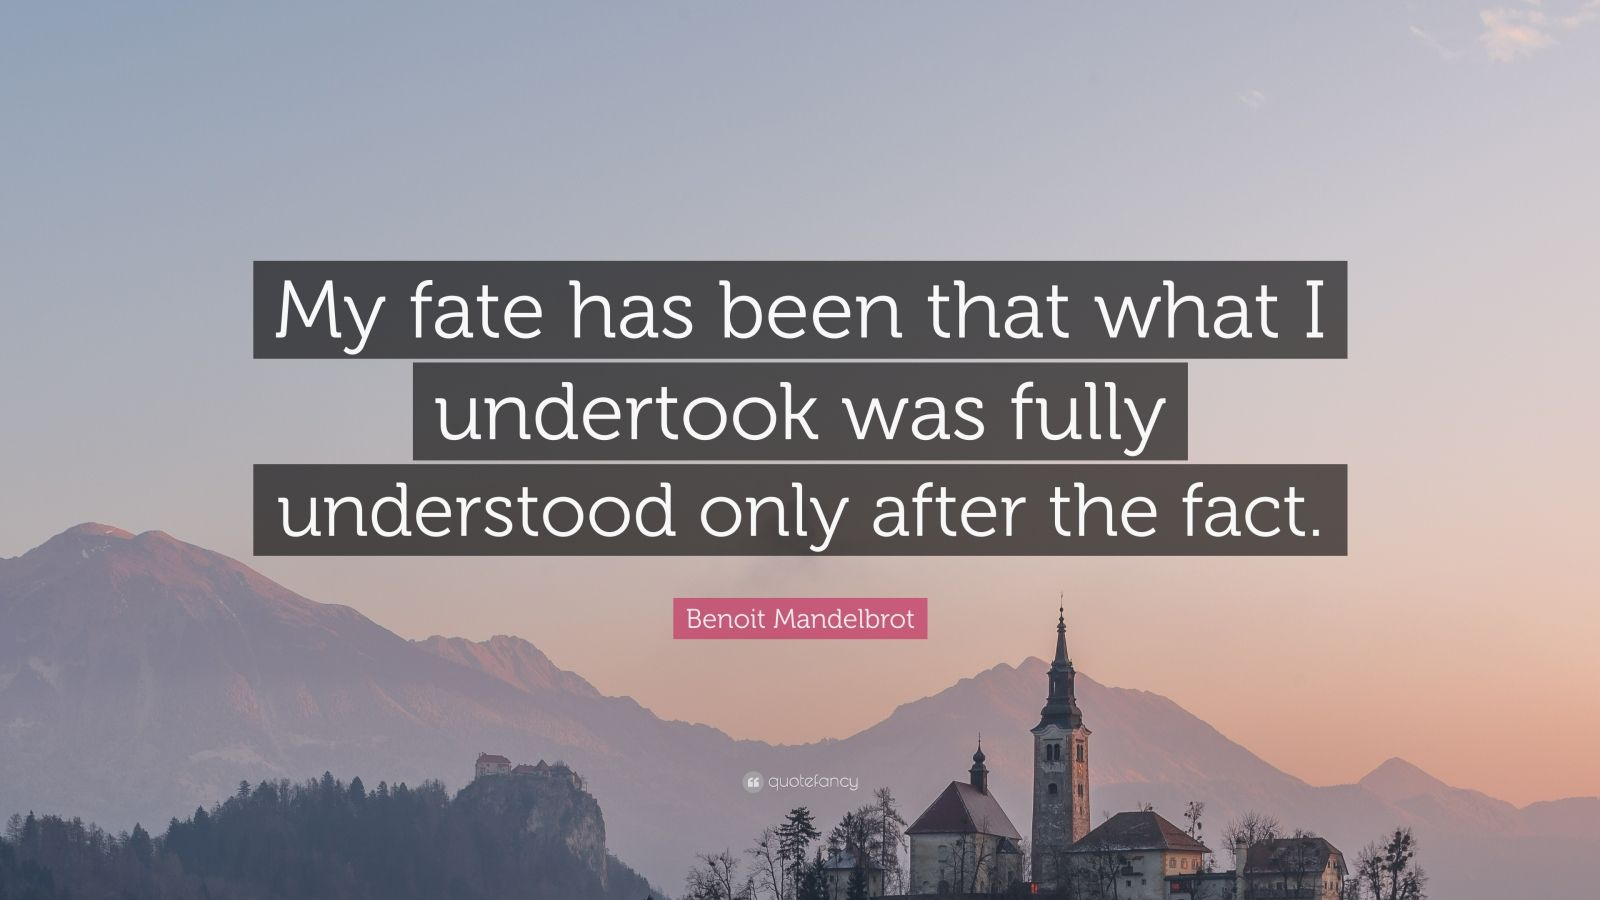 """Benoit Mandelbrot Quote: """"My fate has been that what I undertook was fully understood only after the fact."""""""